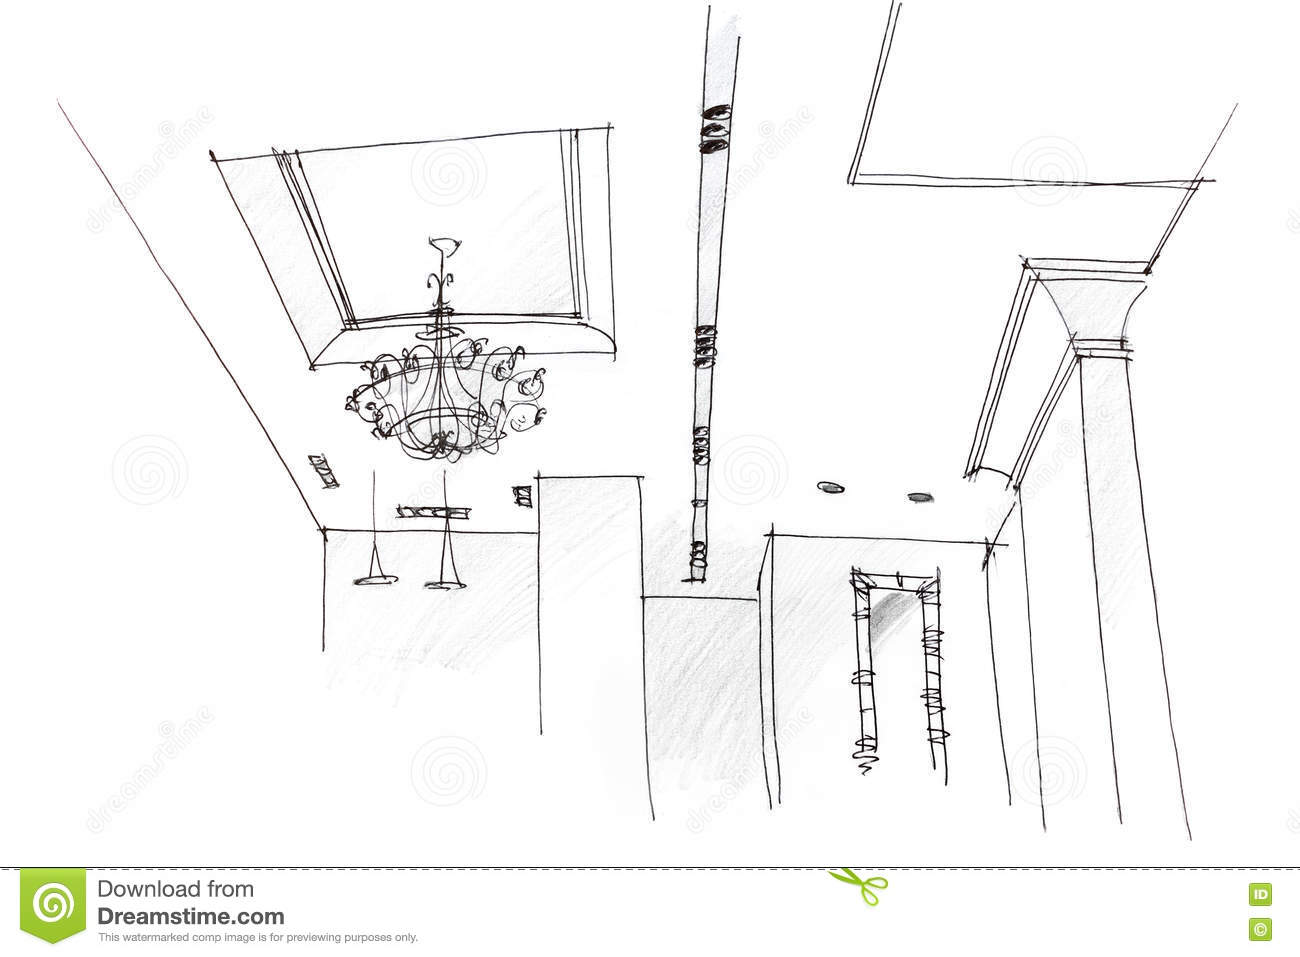 Architectural Freehand Drawing Of Ceiling Light Design At